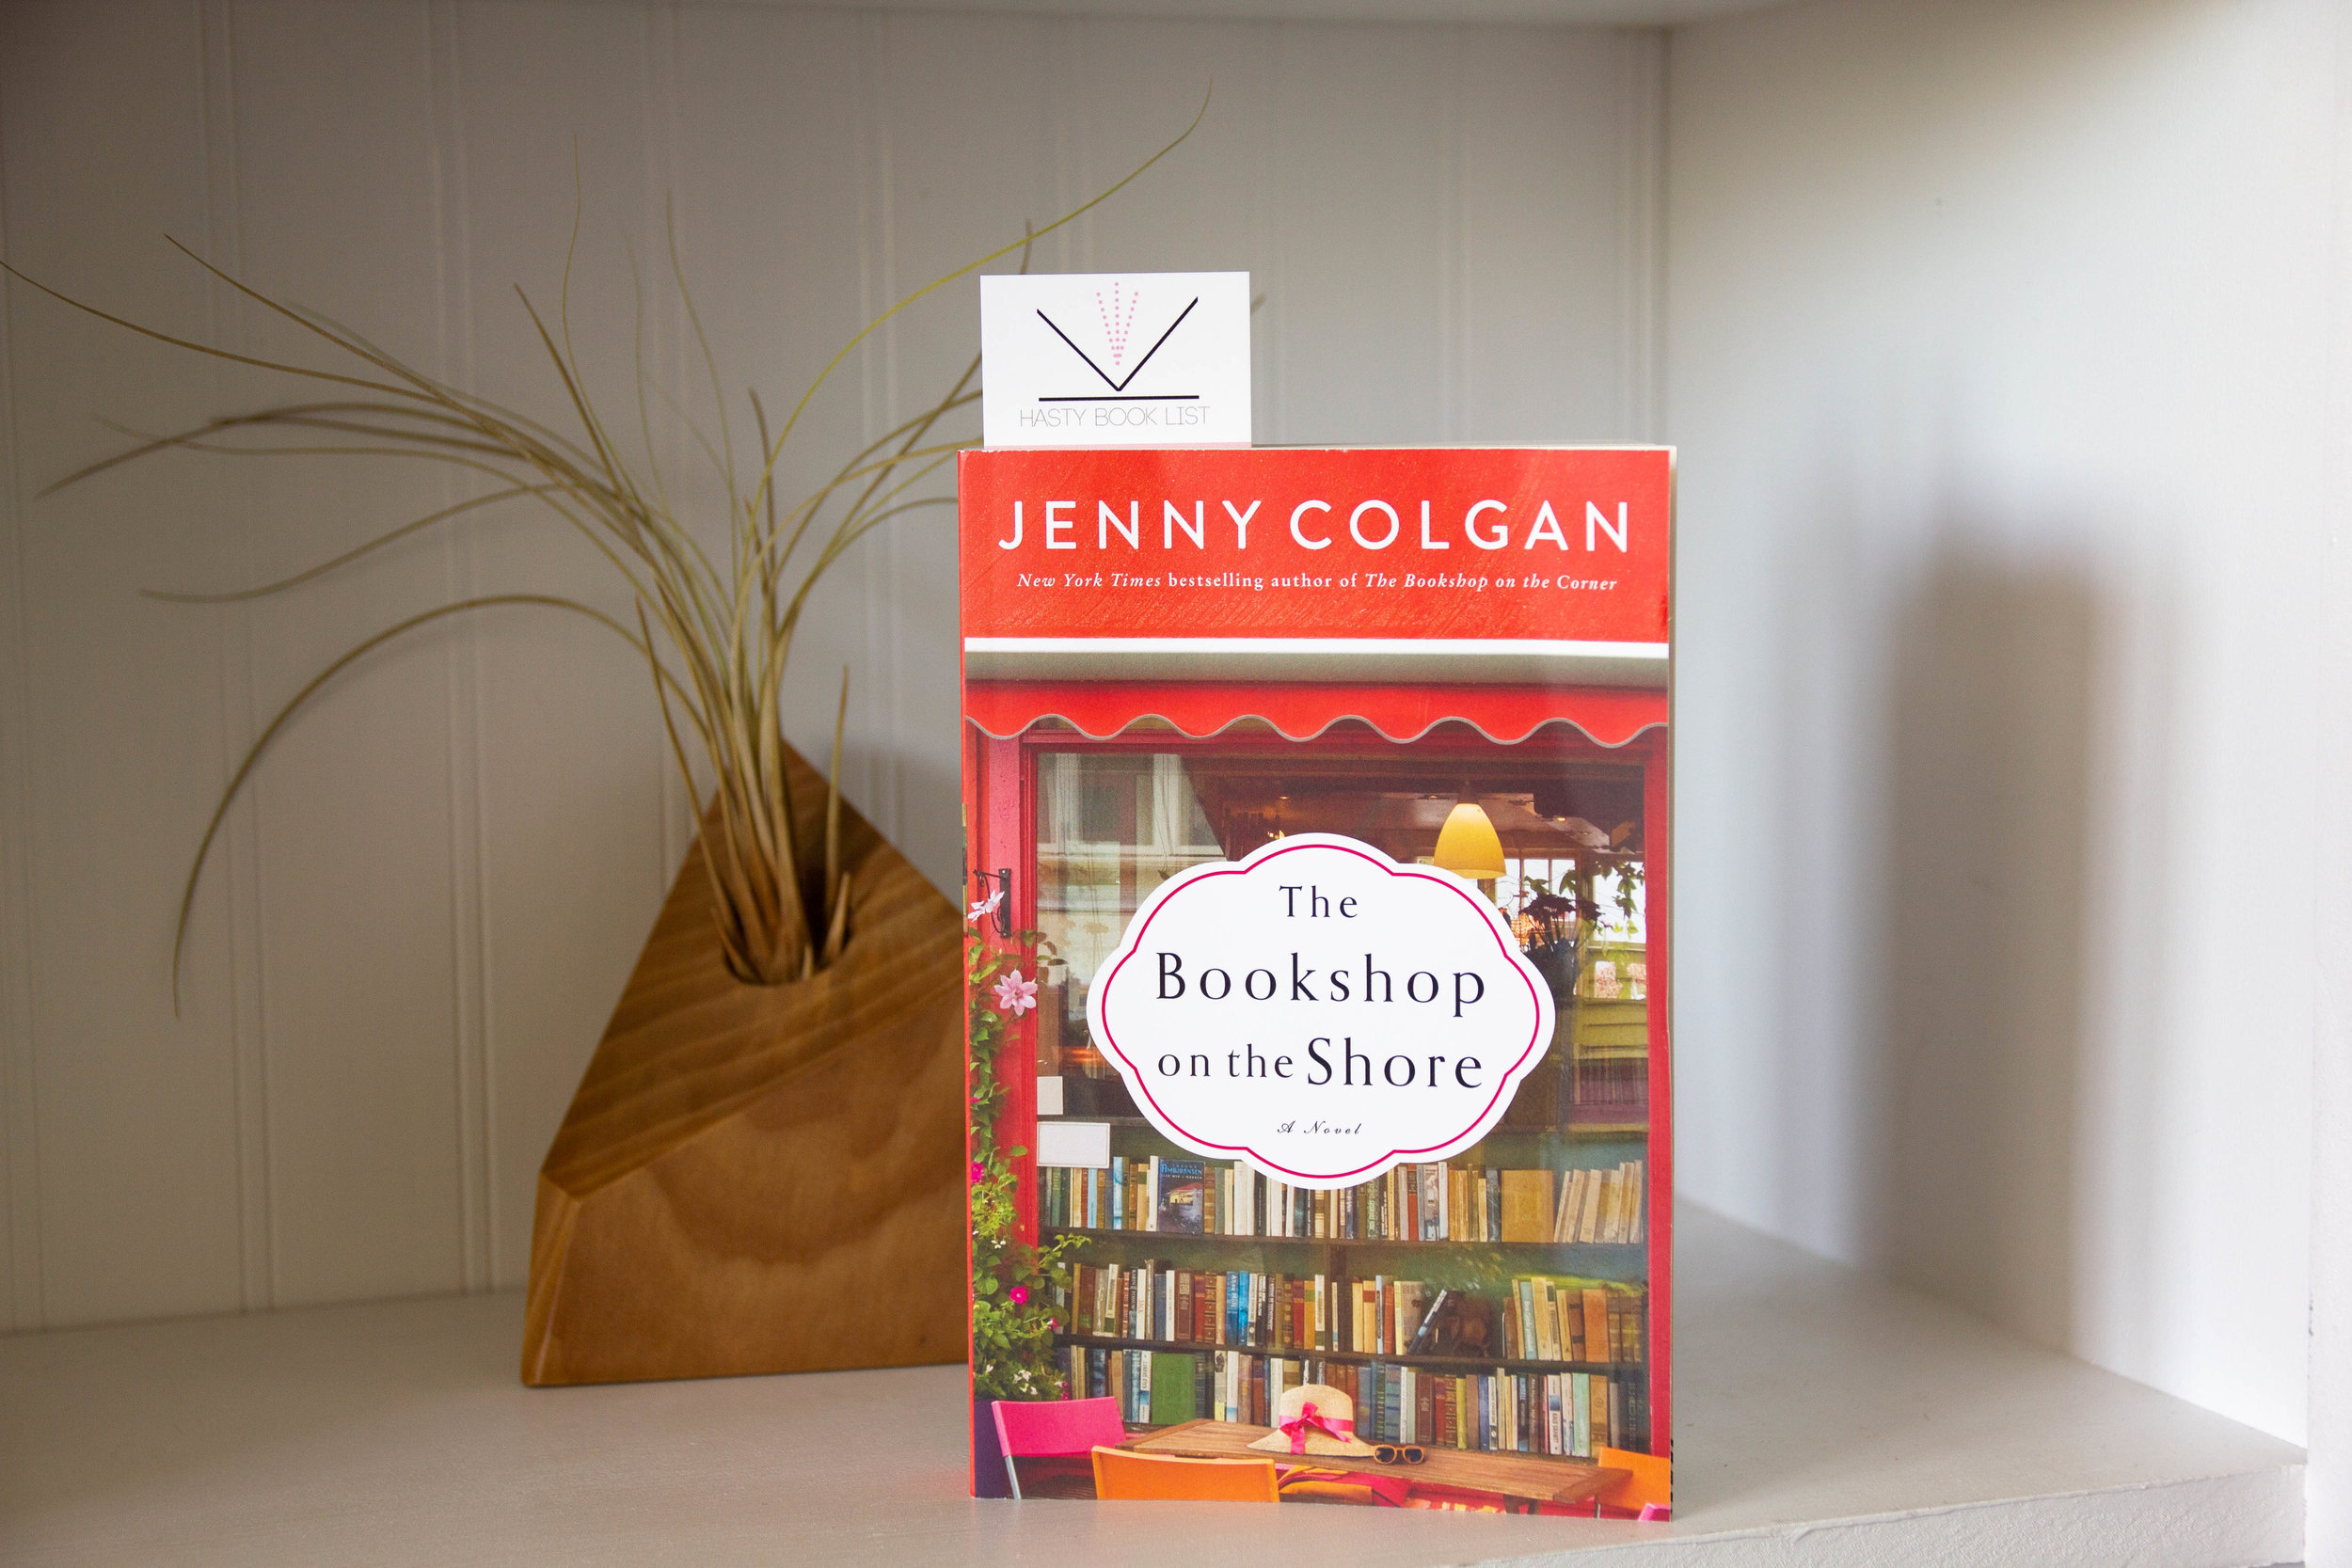 The Bookshop on the Shore by Jenny Colgan - A grand baronial house on Loch Ness, a quirky small-town bookseller, and a single mom looking for a fresh start all come together in this witty and warm-hearted novel by New York Times bestselling author Jenny Colgan.